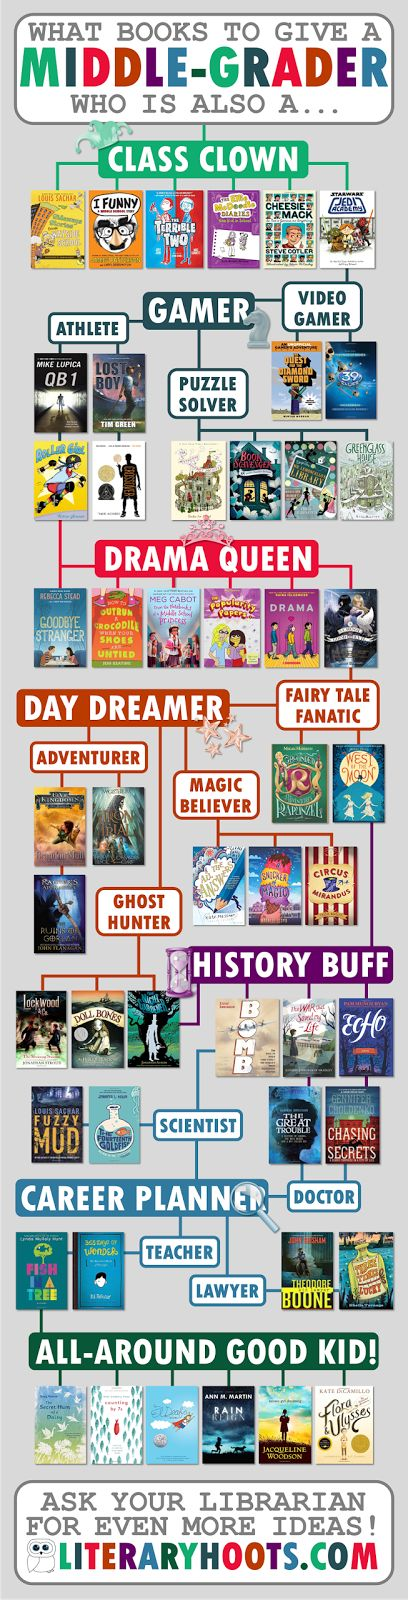 Flowchart: What Books to Give a Middle-Grader